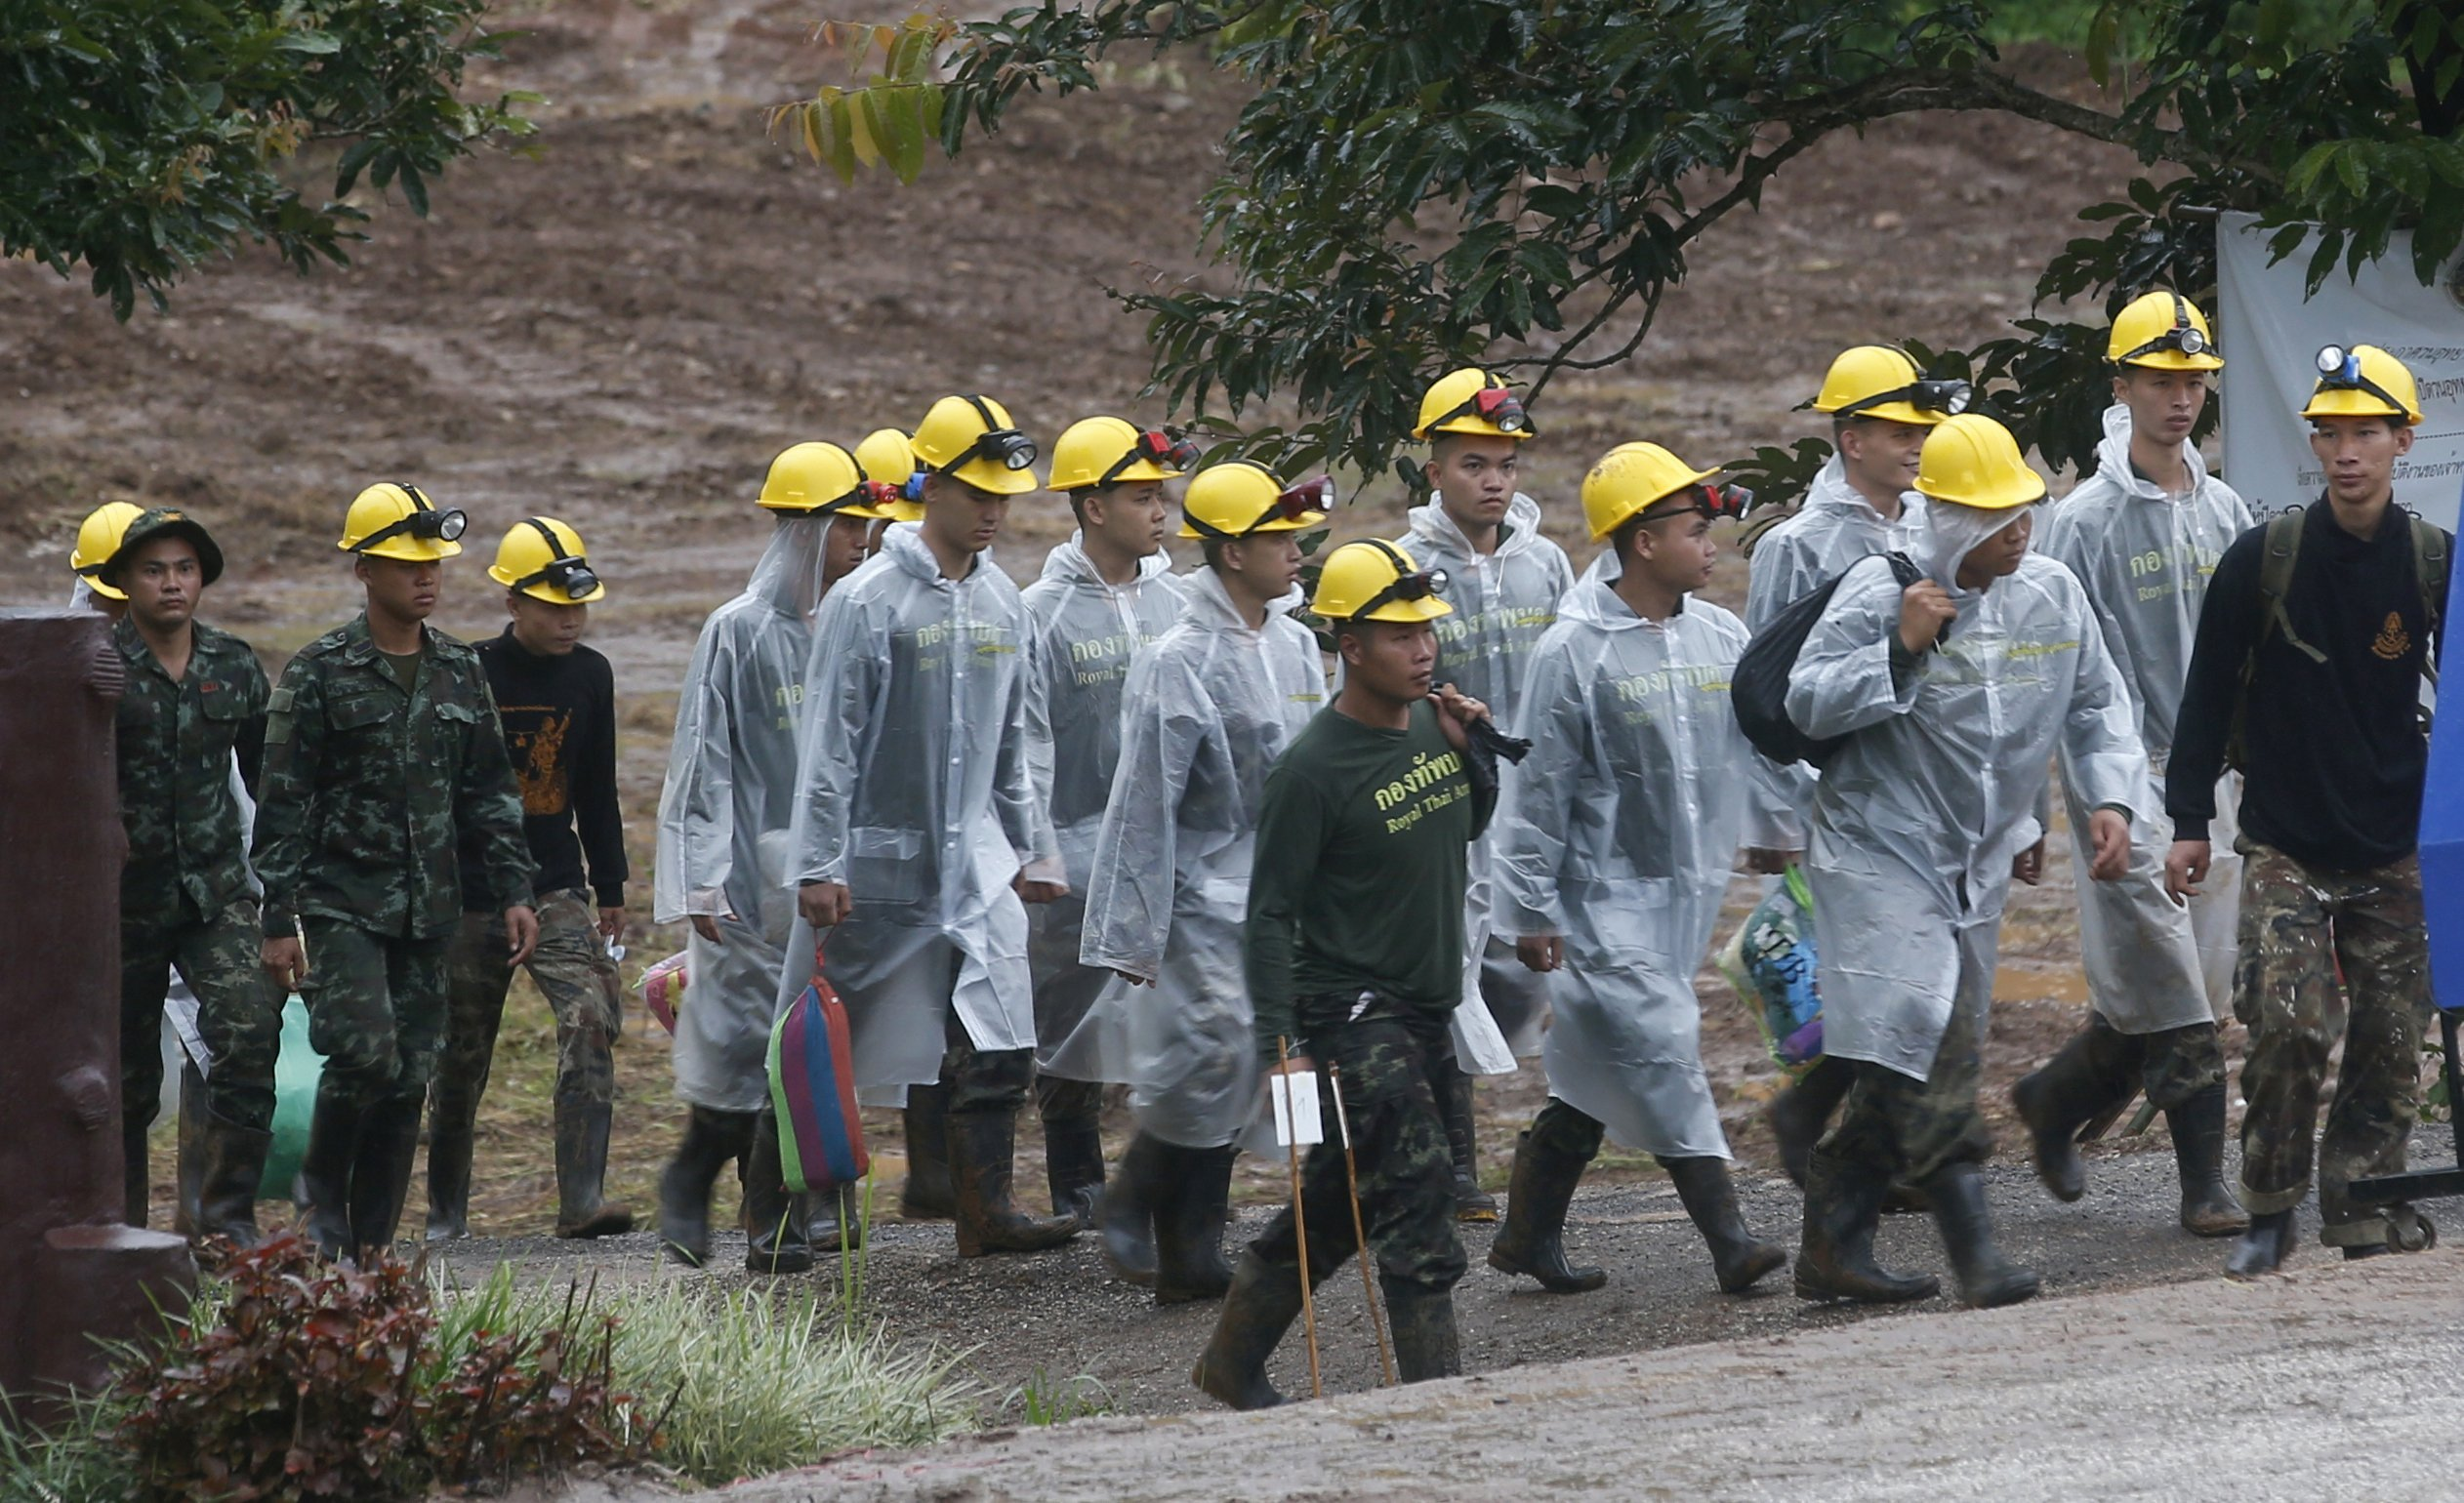 Thai boys shown waving and smiling in first video since rescue